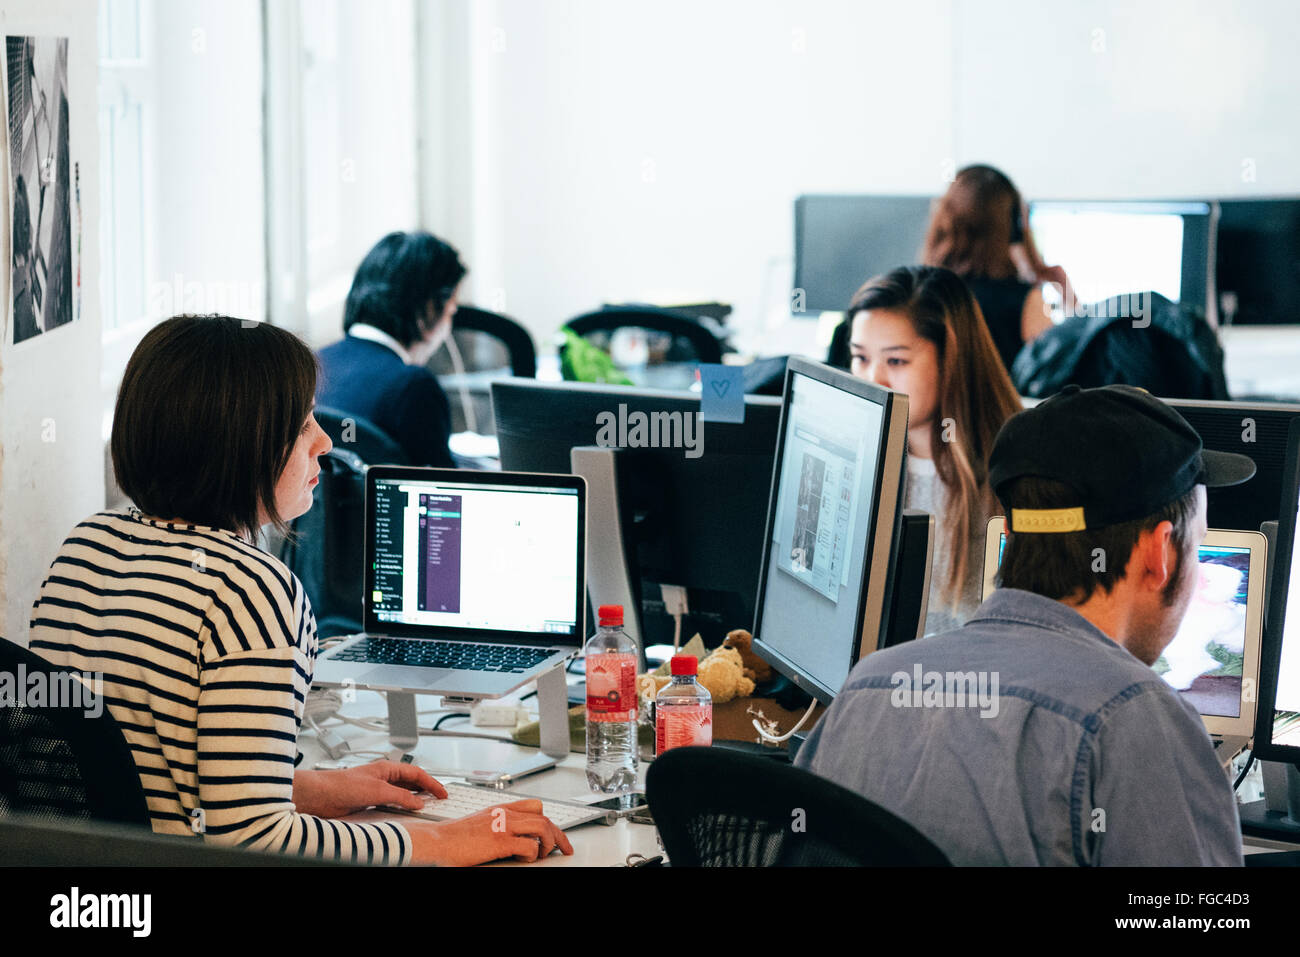 People Working On Computers At Office - Stock Image